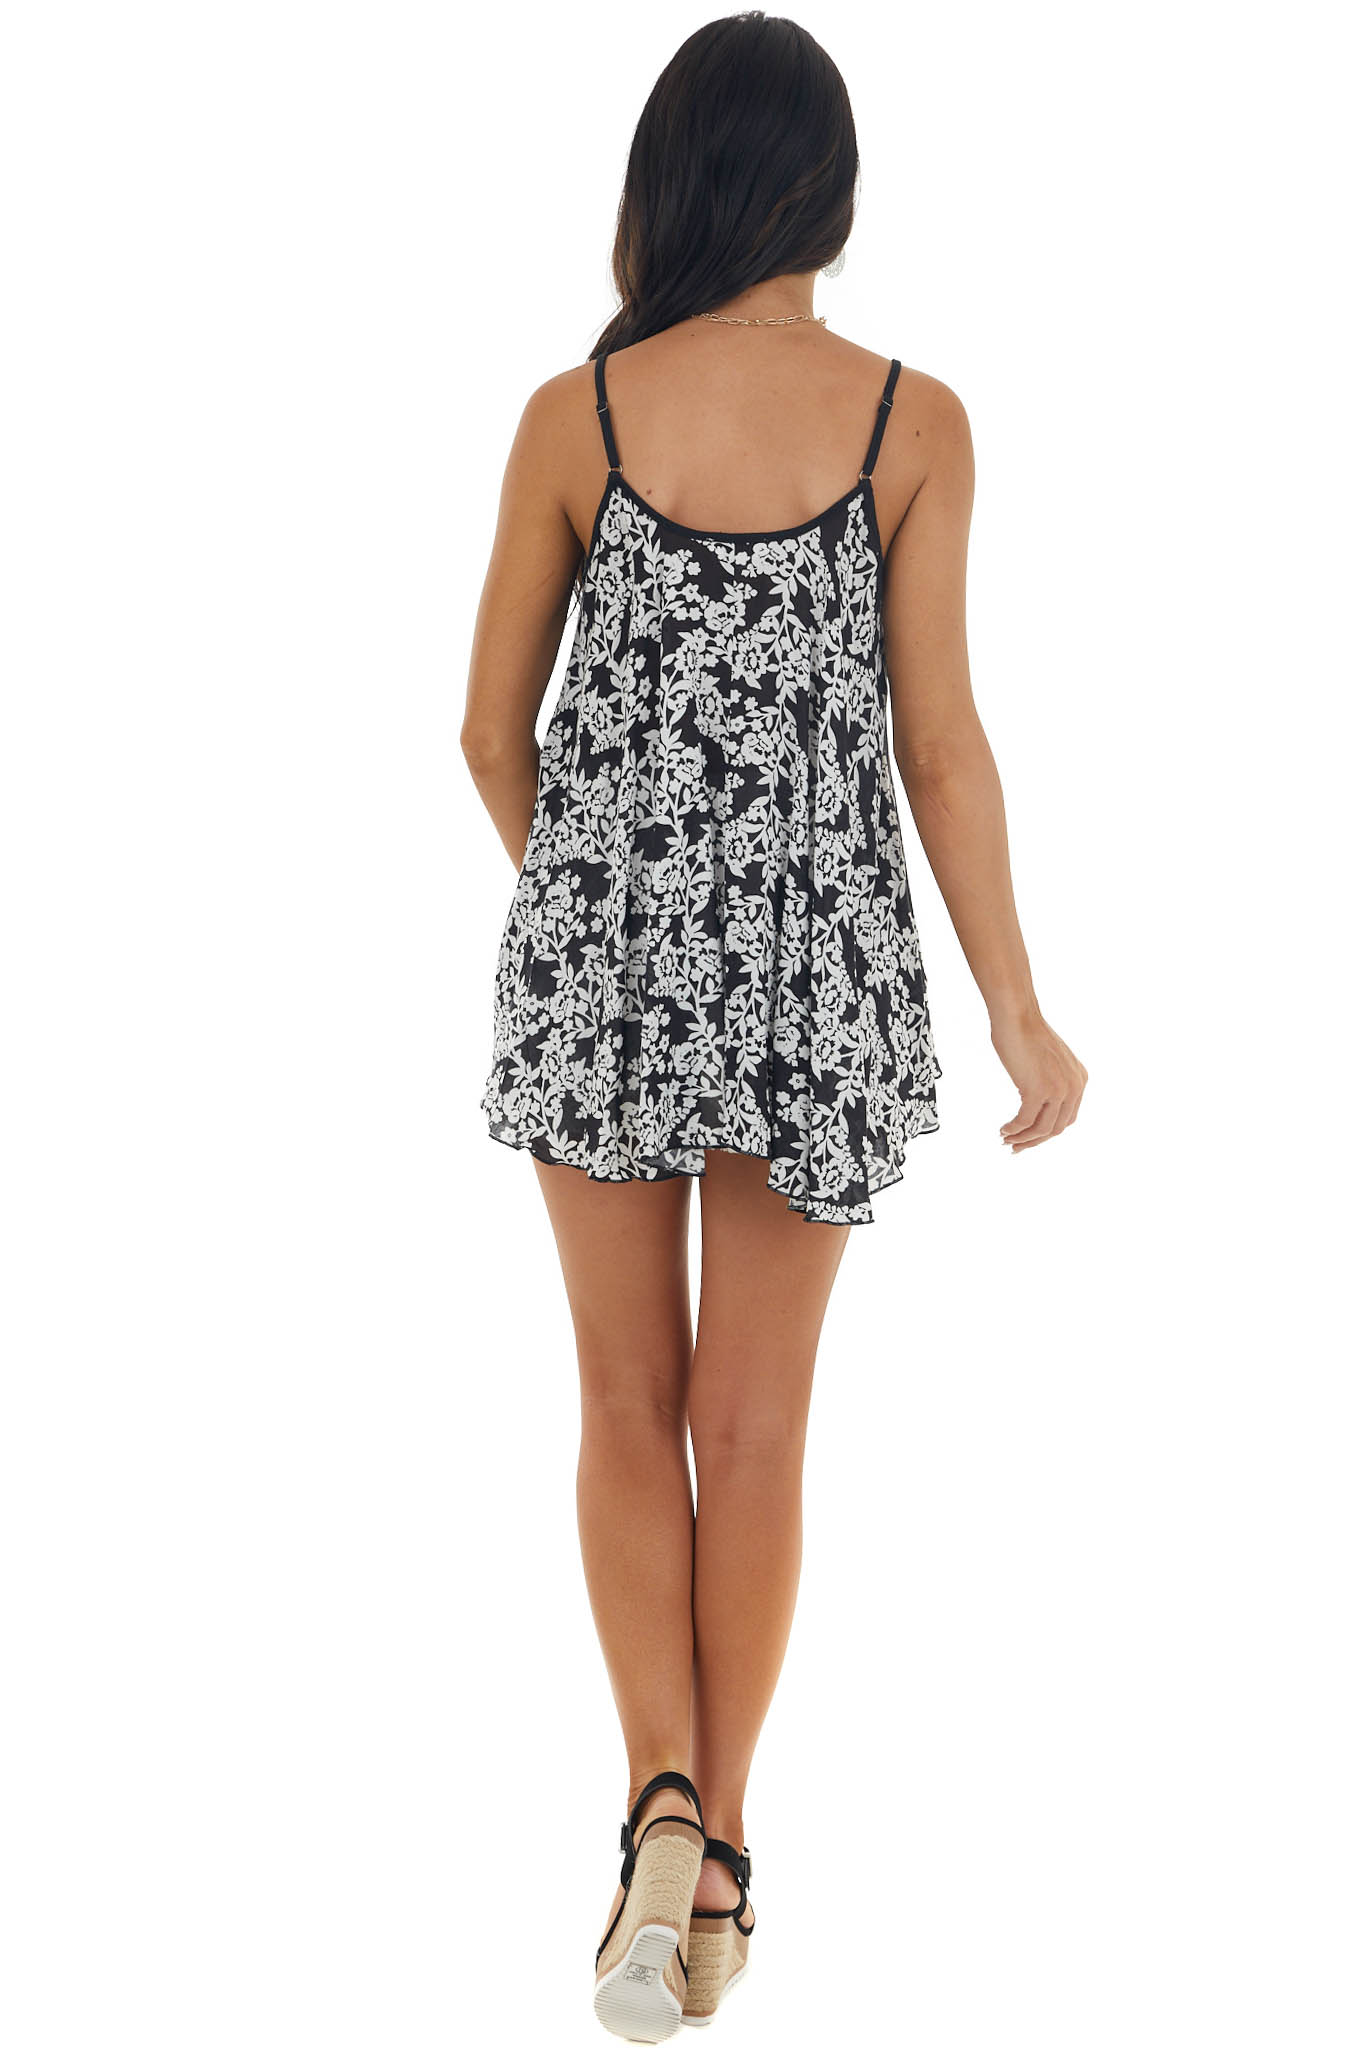 Black and Off White Floral Print Tank Top